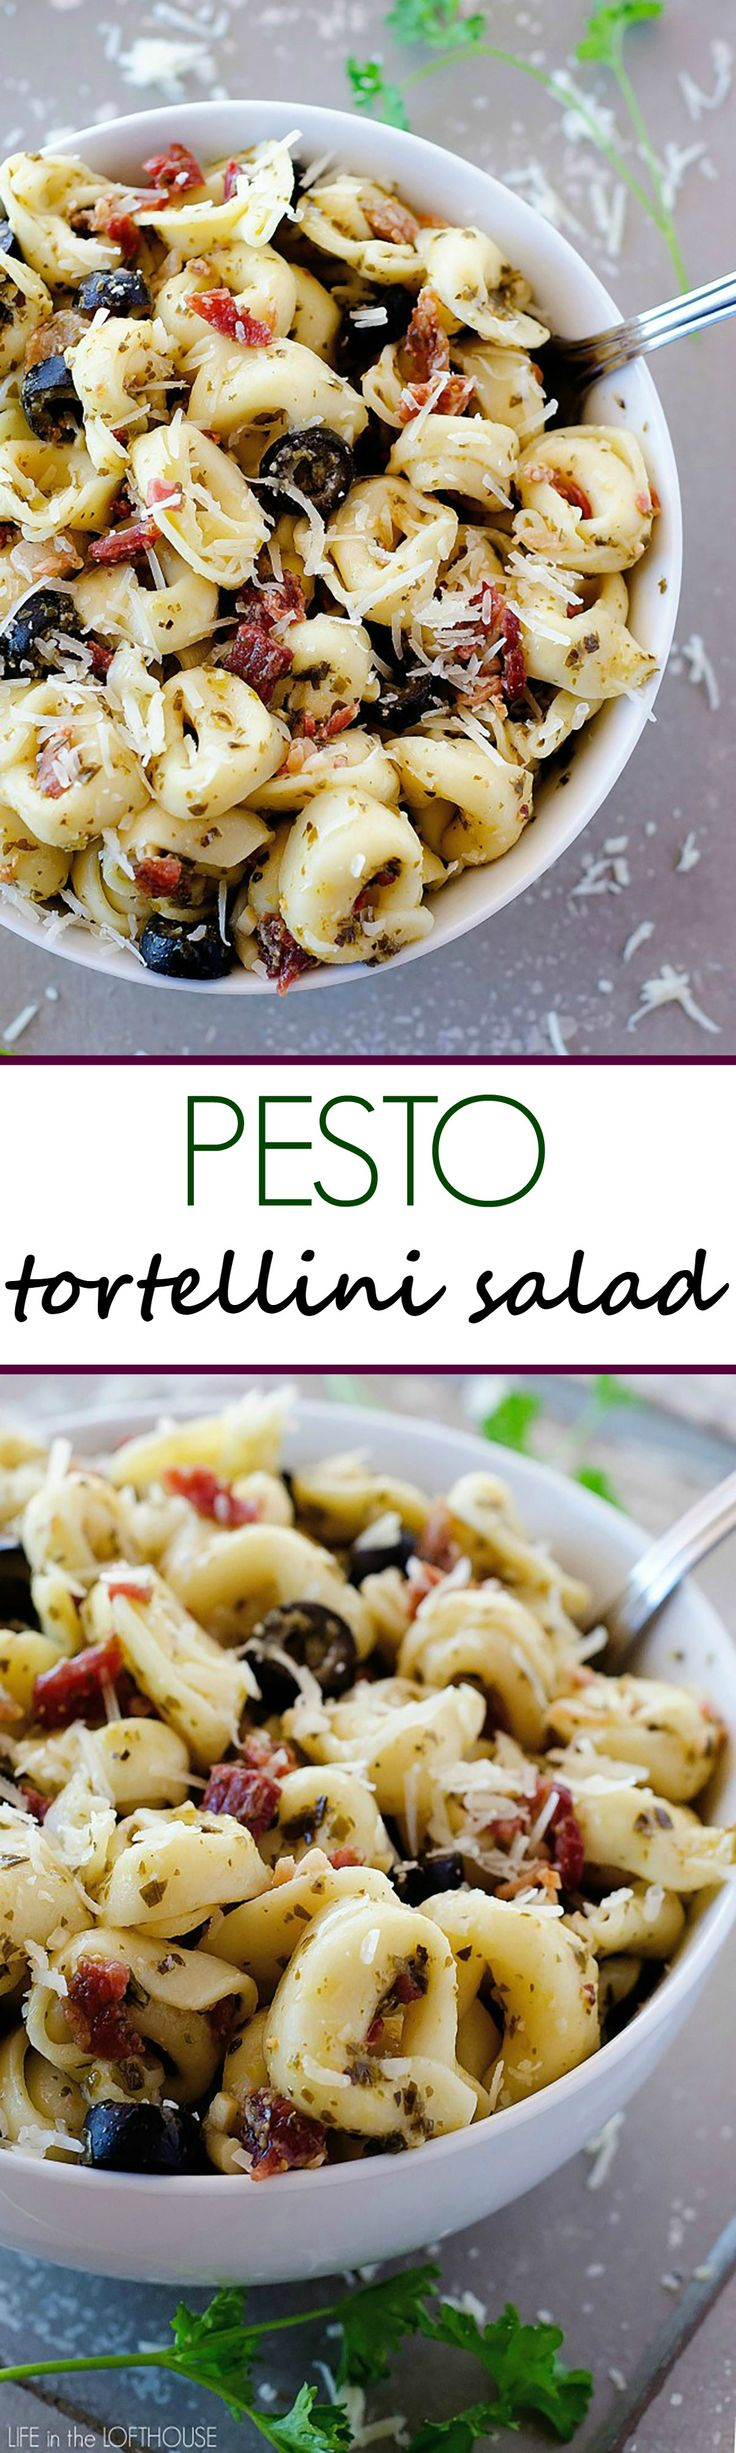 This pasta salad is covered in pesto, bacon, cheese and olives. It is always the first to go when I serve it